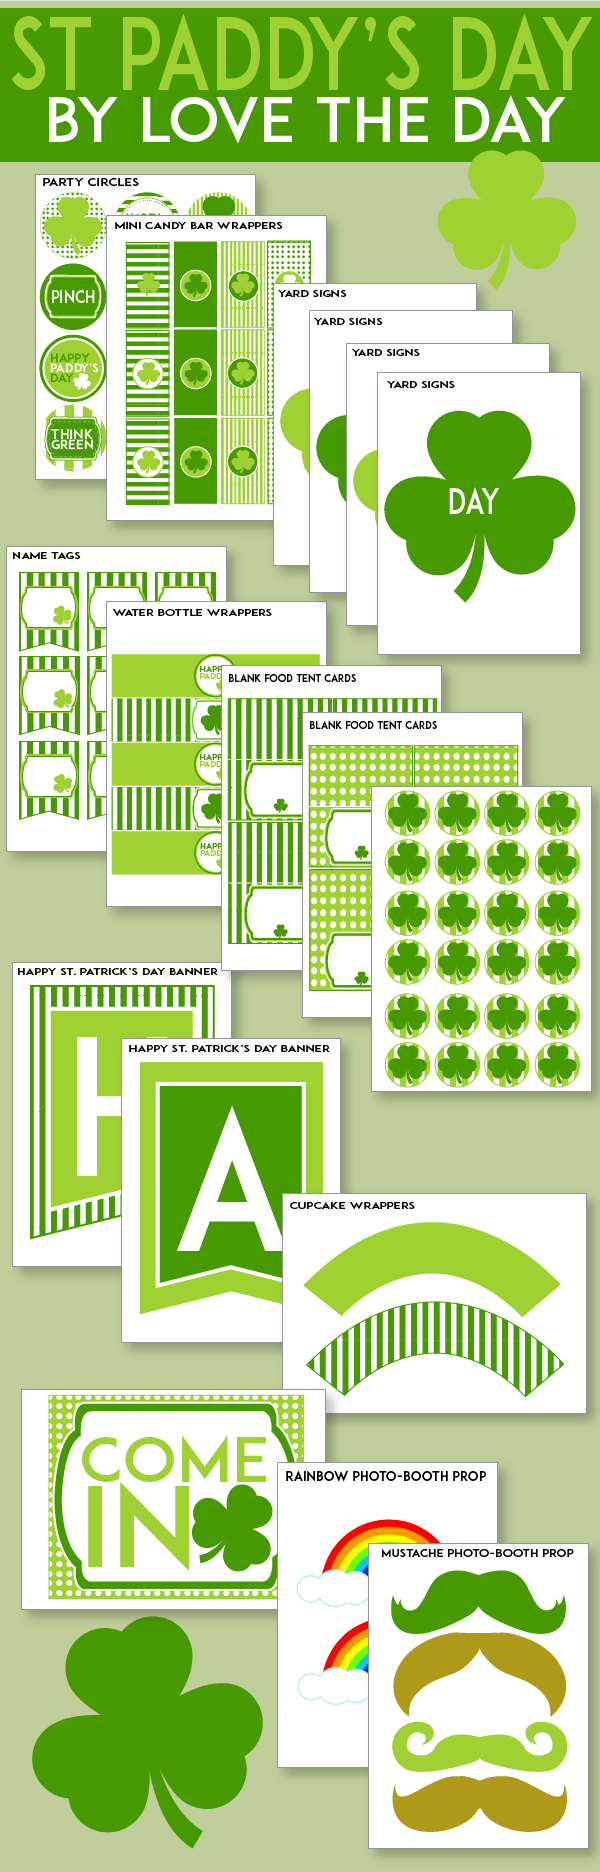 free st patrick u0027s day printables by love the day